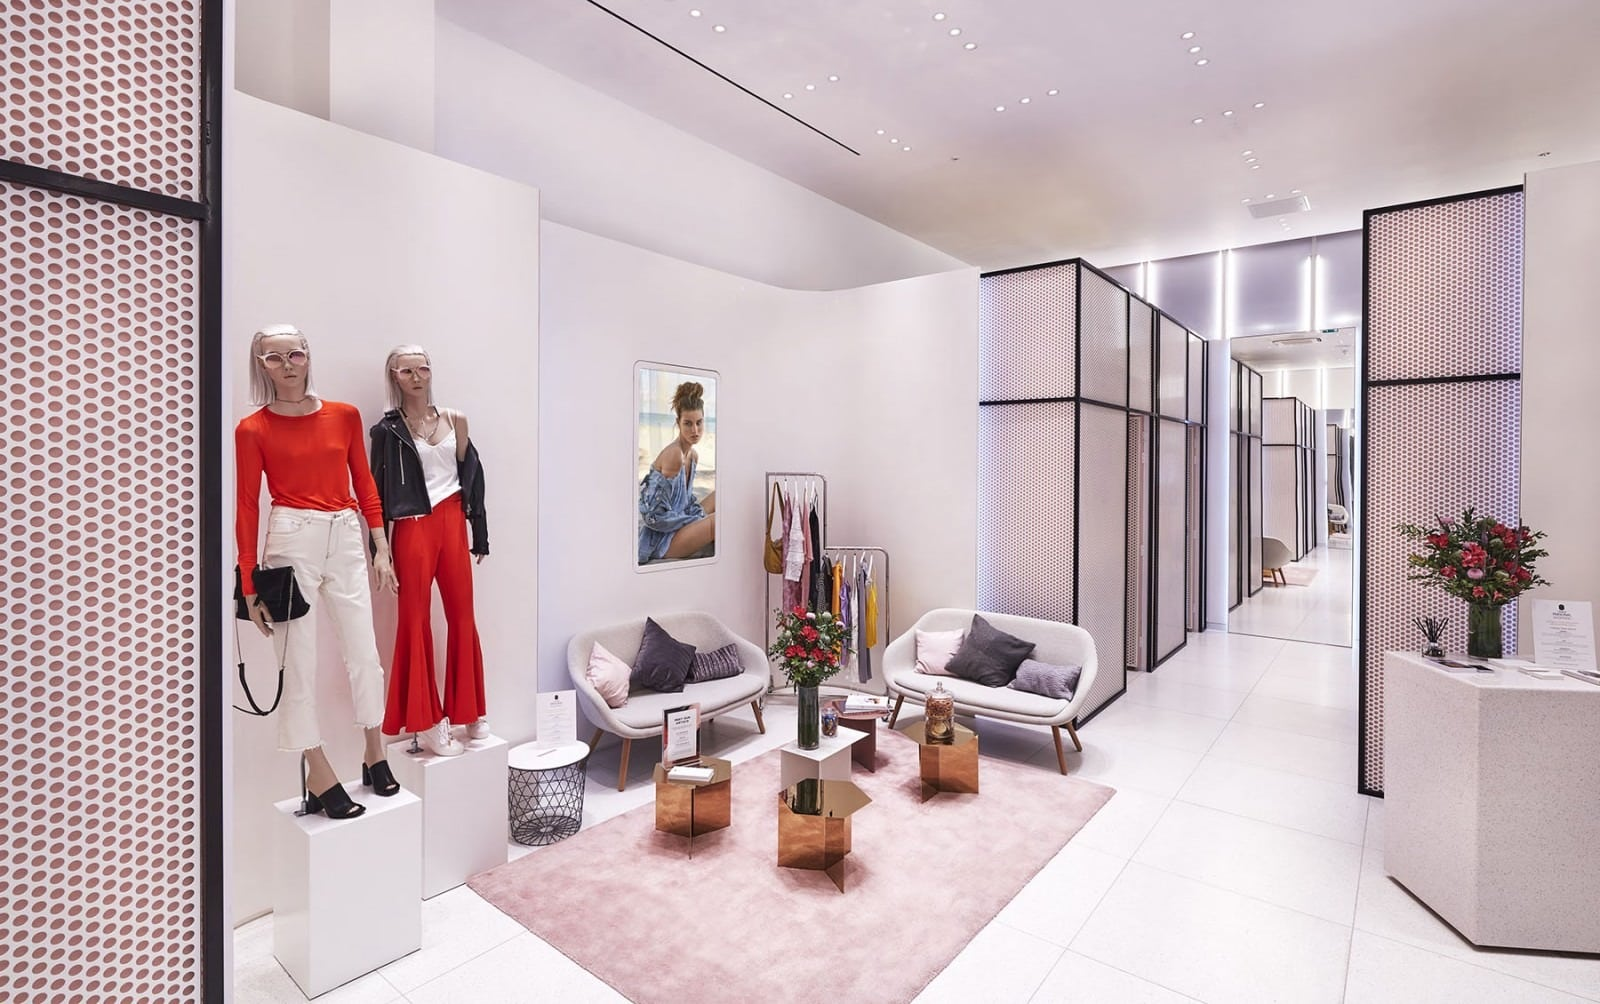 Topshop dressing room with seating area and mannequins - neutral lighting and interior